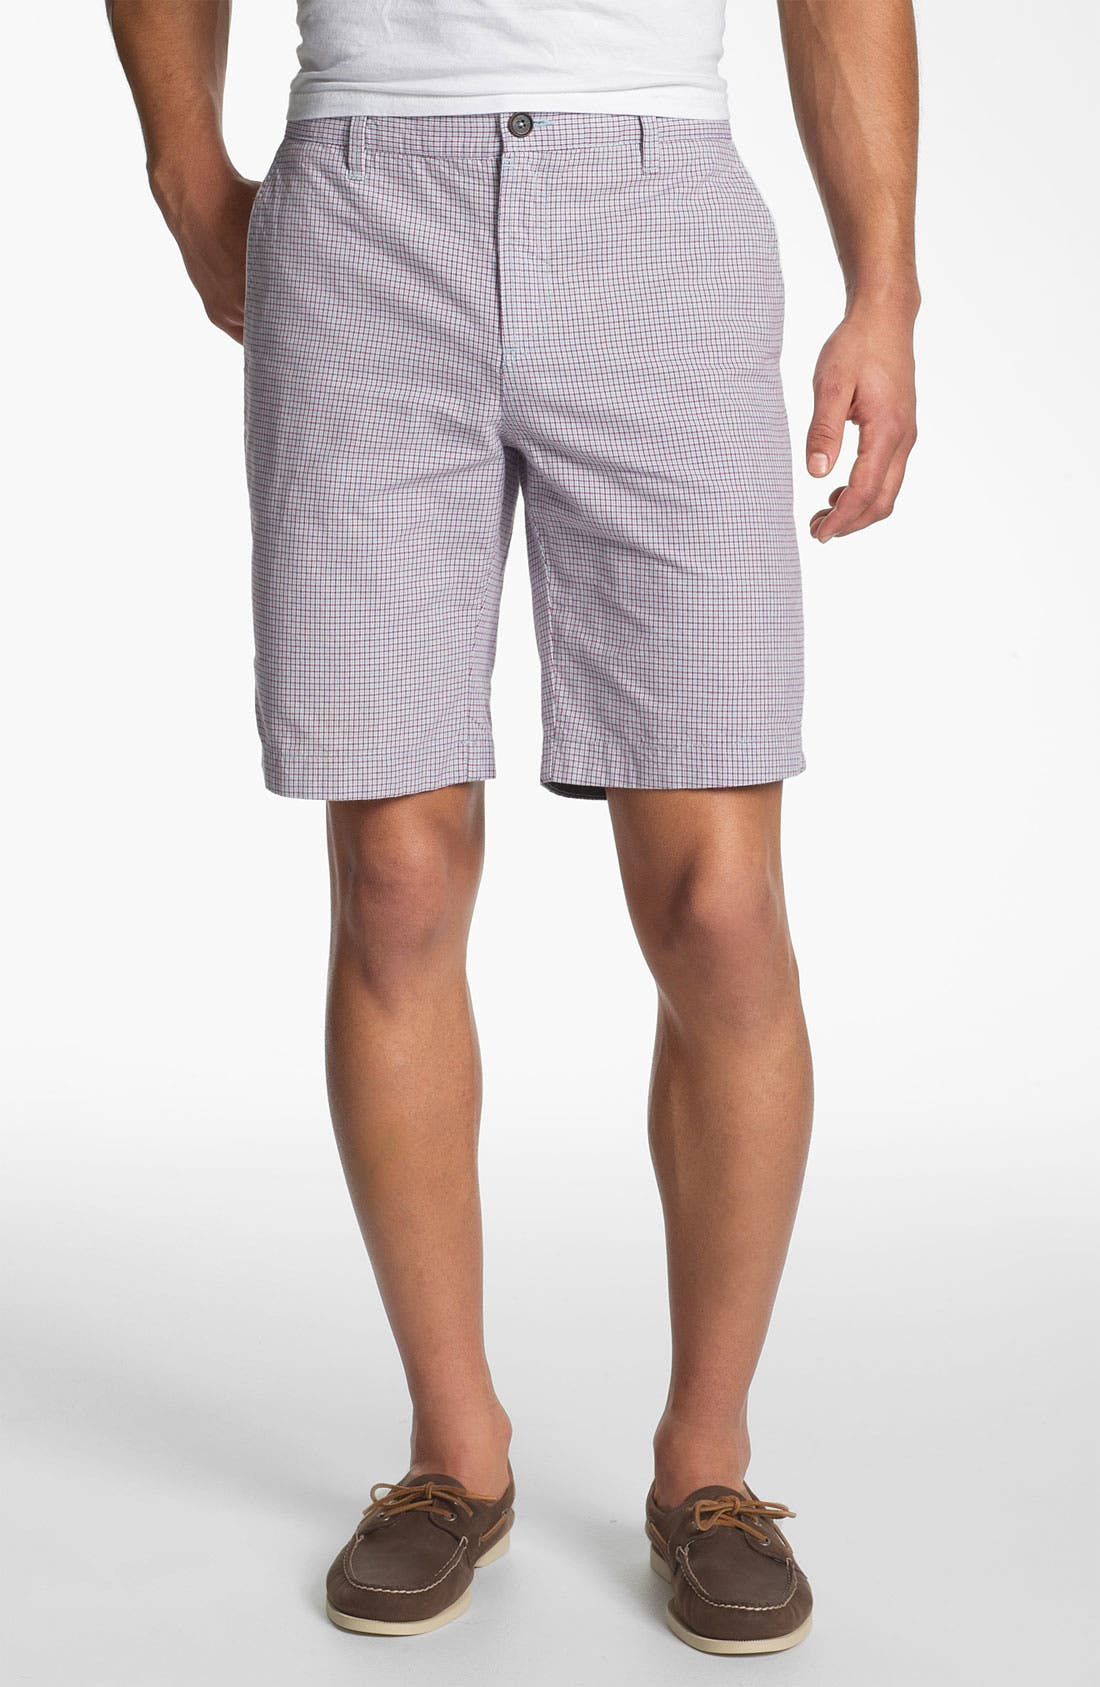 Main Image - Ted Baker London 'Rewfus' Shorts